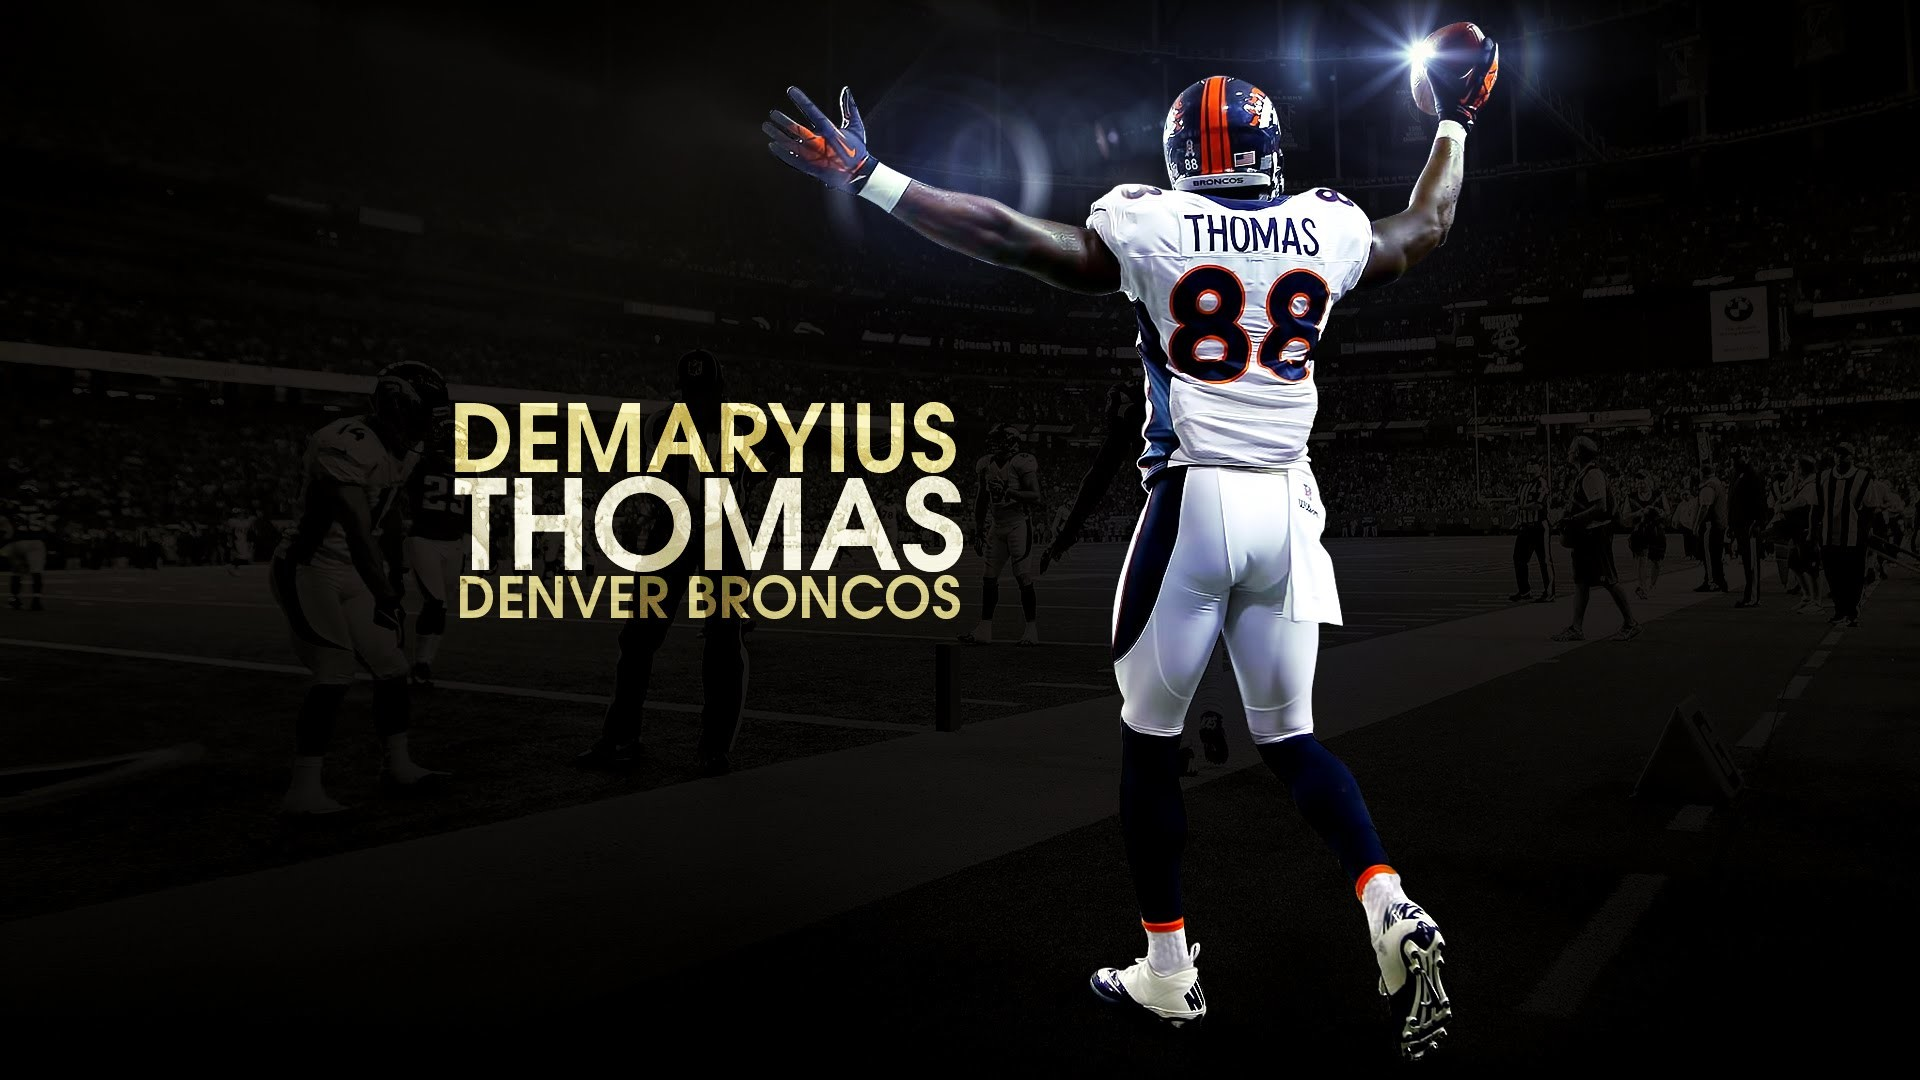 Denver Broncos Wallpaper Screensavers (69+ images)Demaryius Thomas Wallpaper